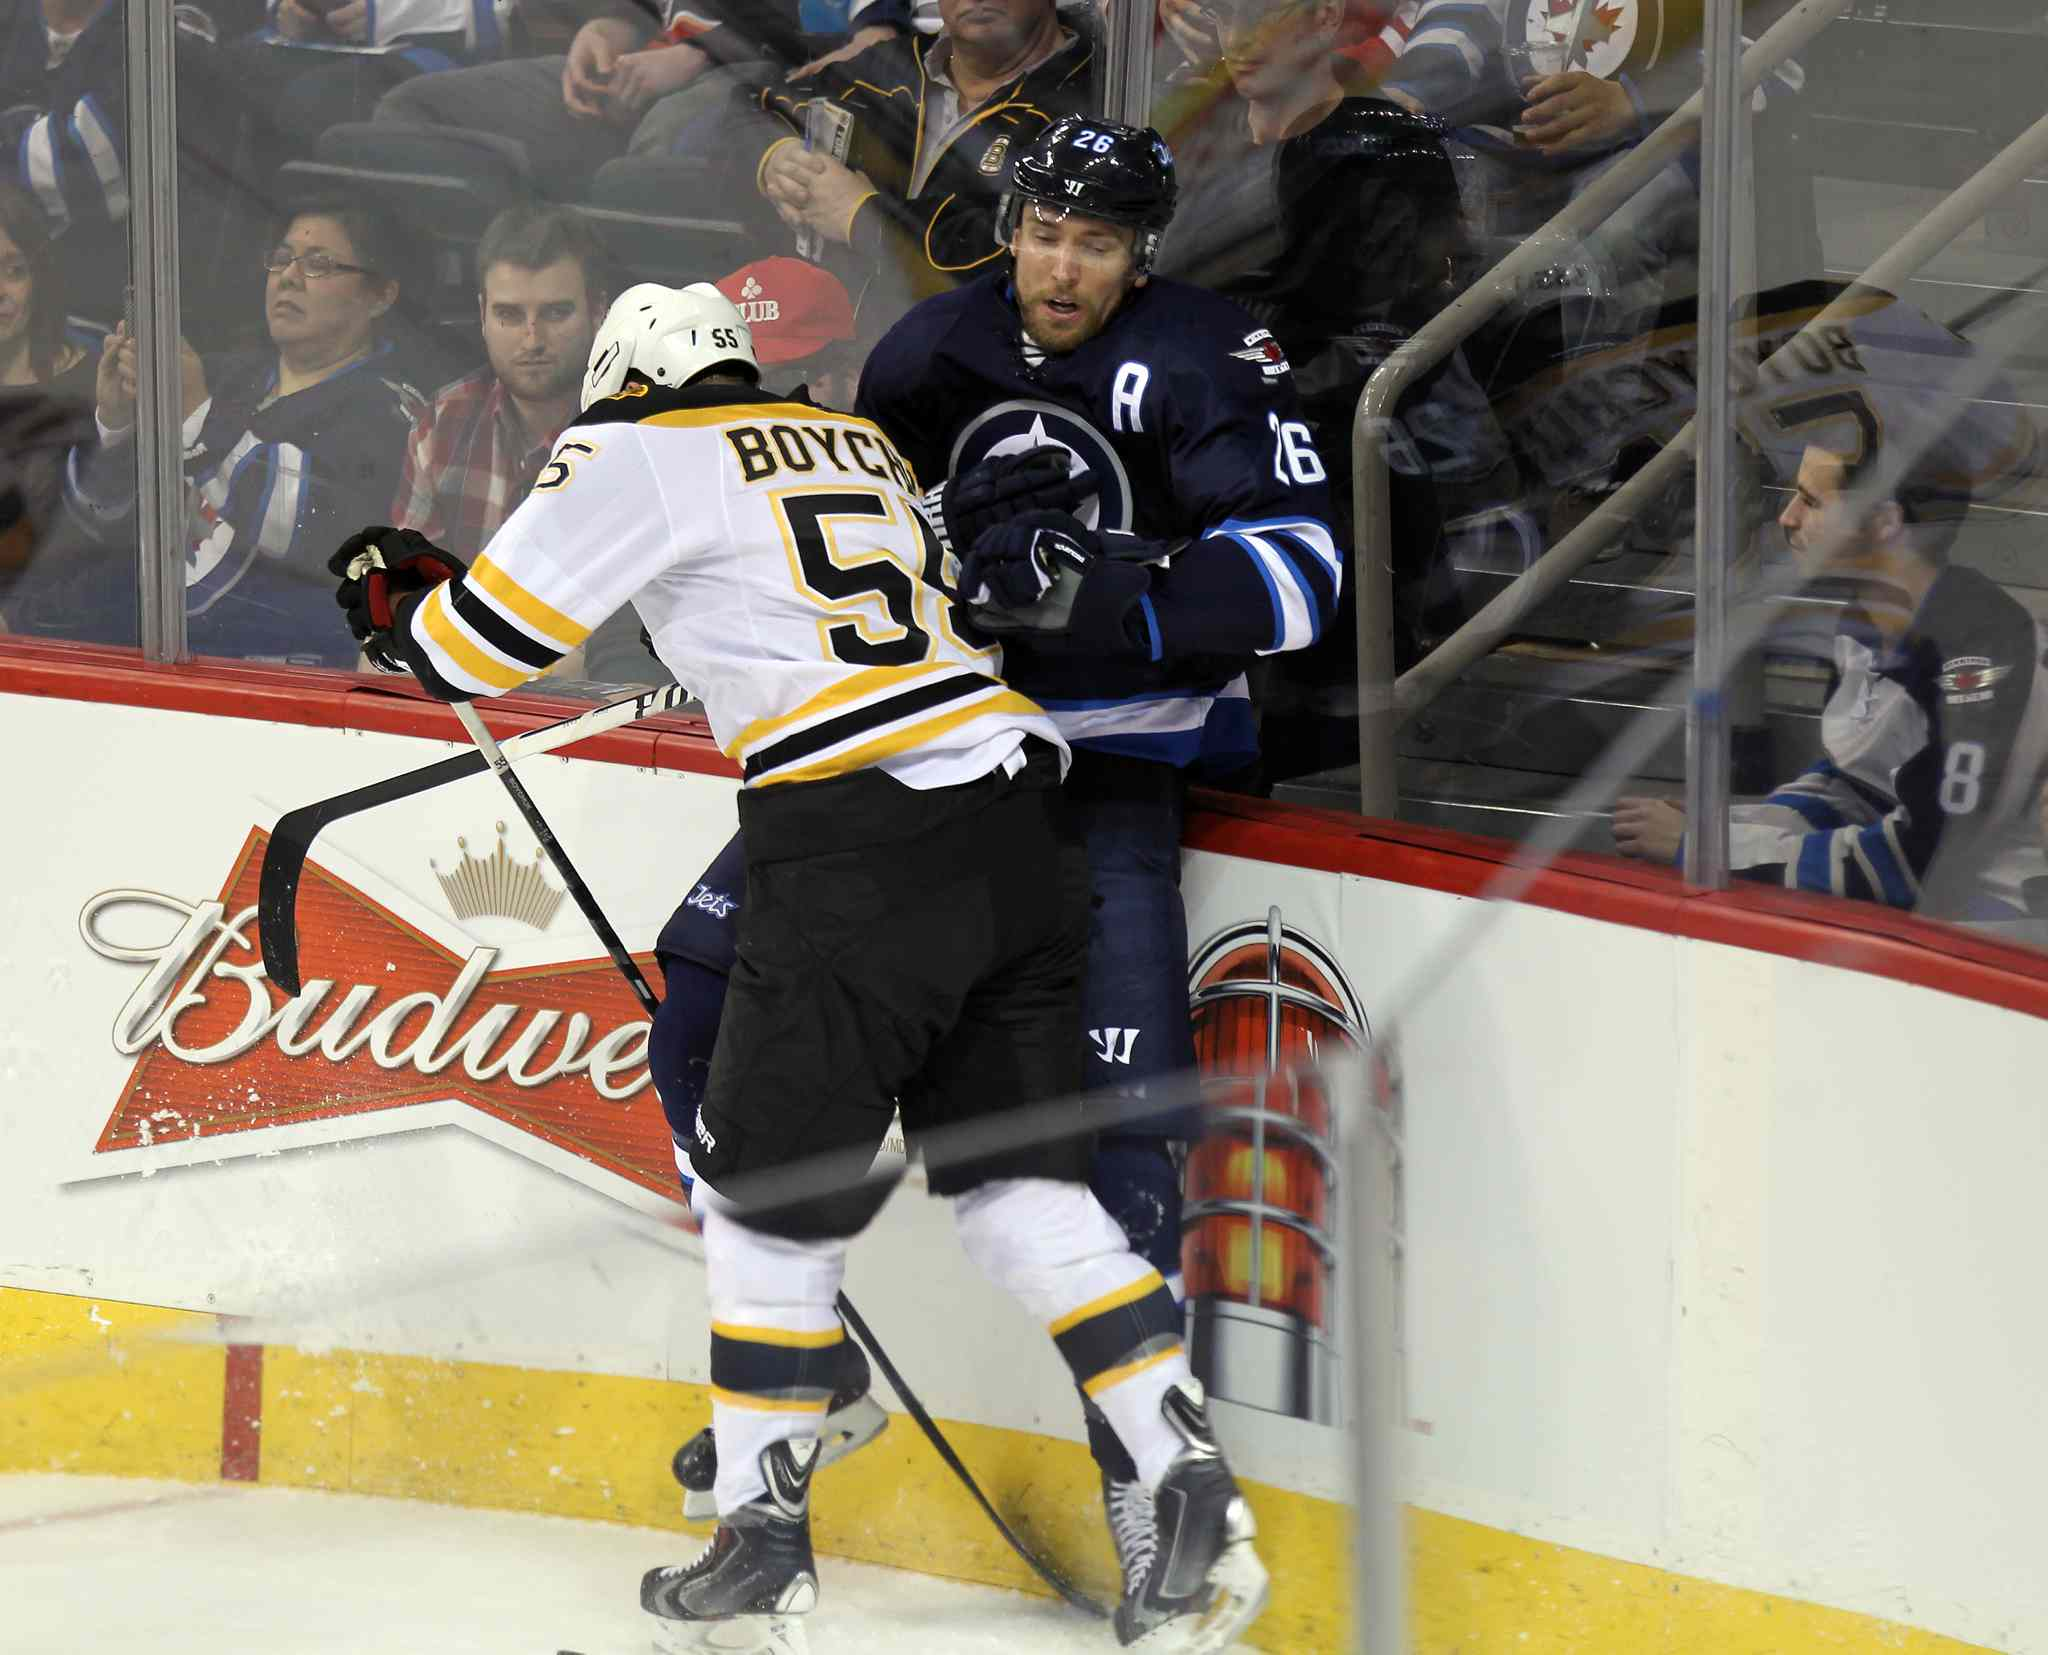 Bruins' Johnny Boychuk takes out Jets' Blake Wheeler in the first period.